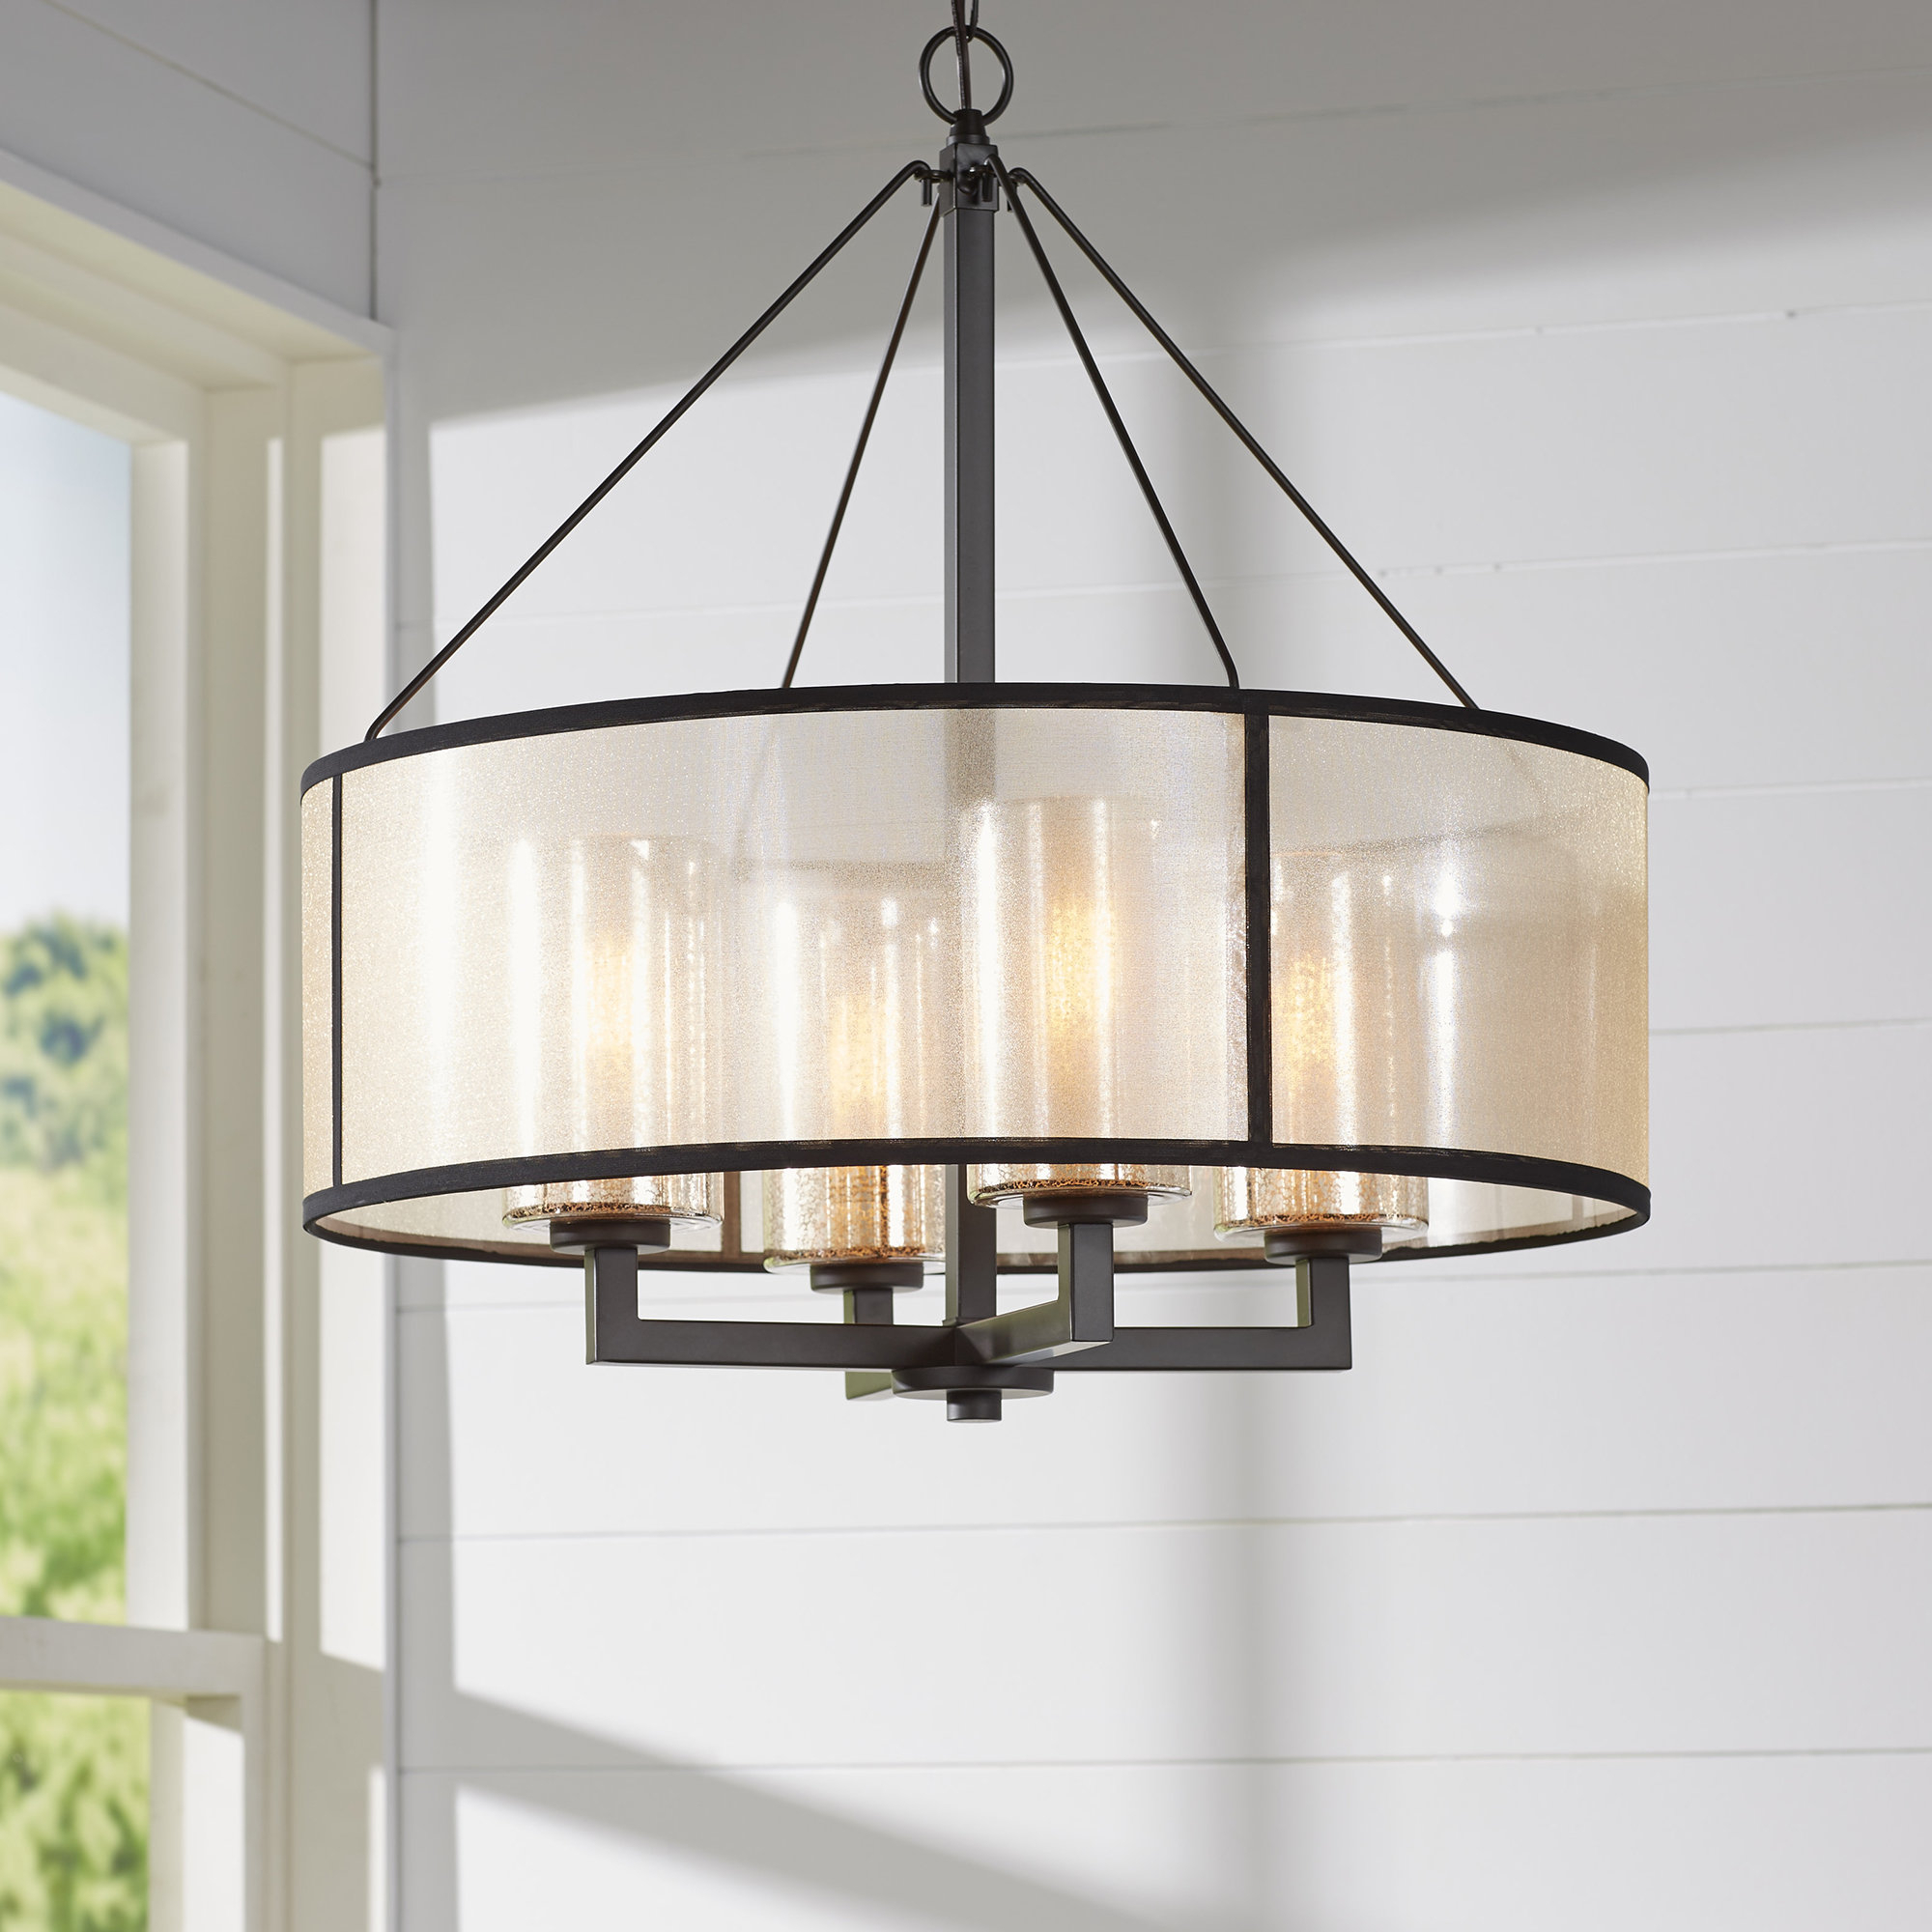 Dailey 4 Light Drum Chandelier Intended For Harlan 5 Light Drum Chandeliers (View 22 of 30)